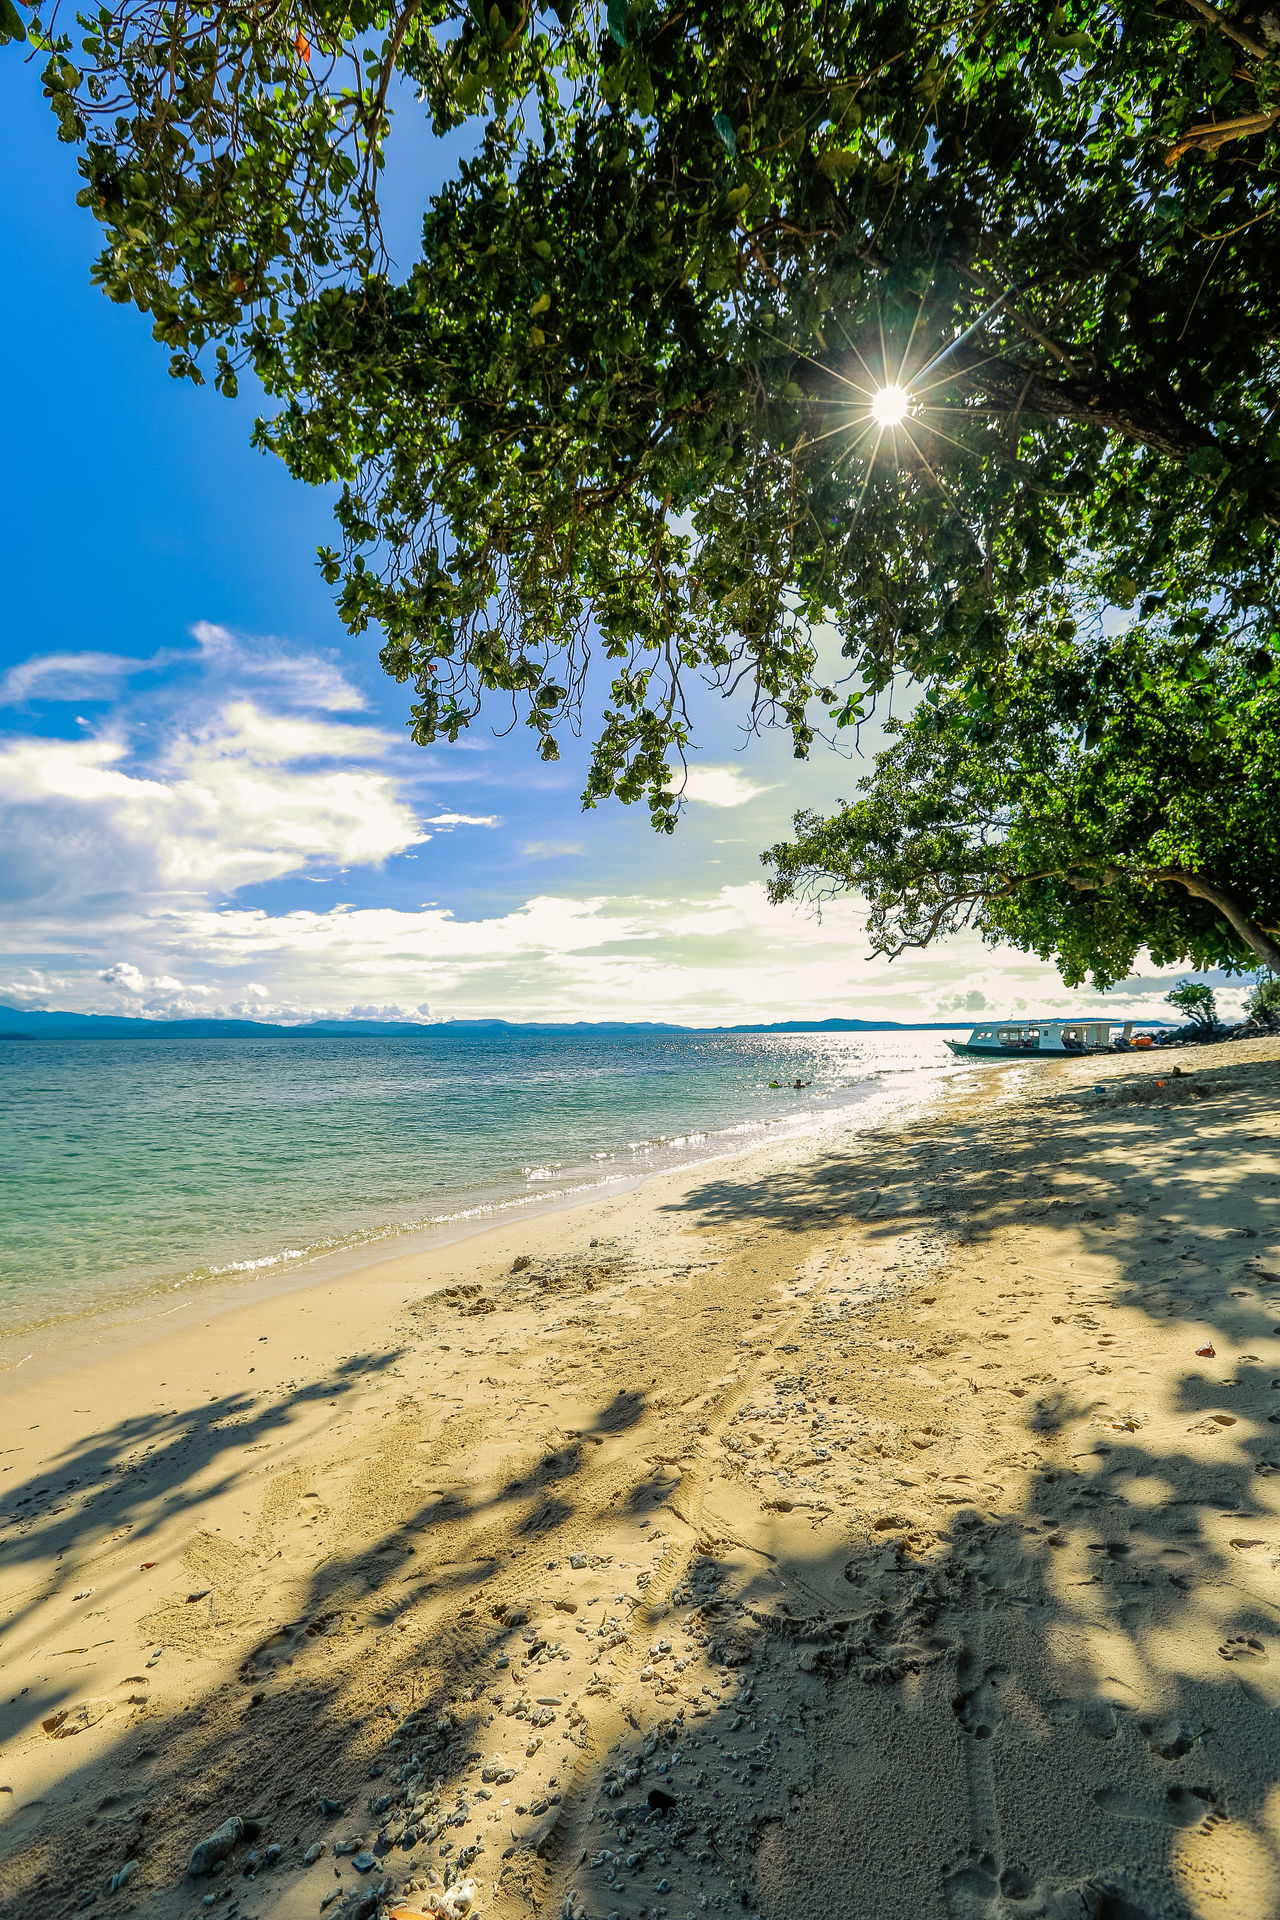 Bangka Island Beach Beauty In Nature Blue Day EyeEm EyeEm Nature Lover Growth Horizon Over Water Idyllic Landscape Landscape_Collection Nature Outdoors Sand Scenics Sea Sky Sun Tranquil Scene Tree Water Wave Flare Islands